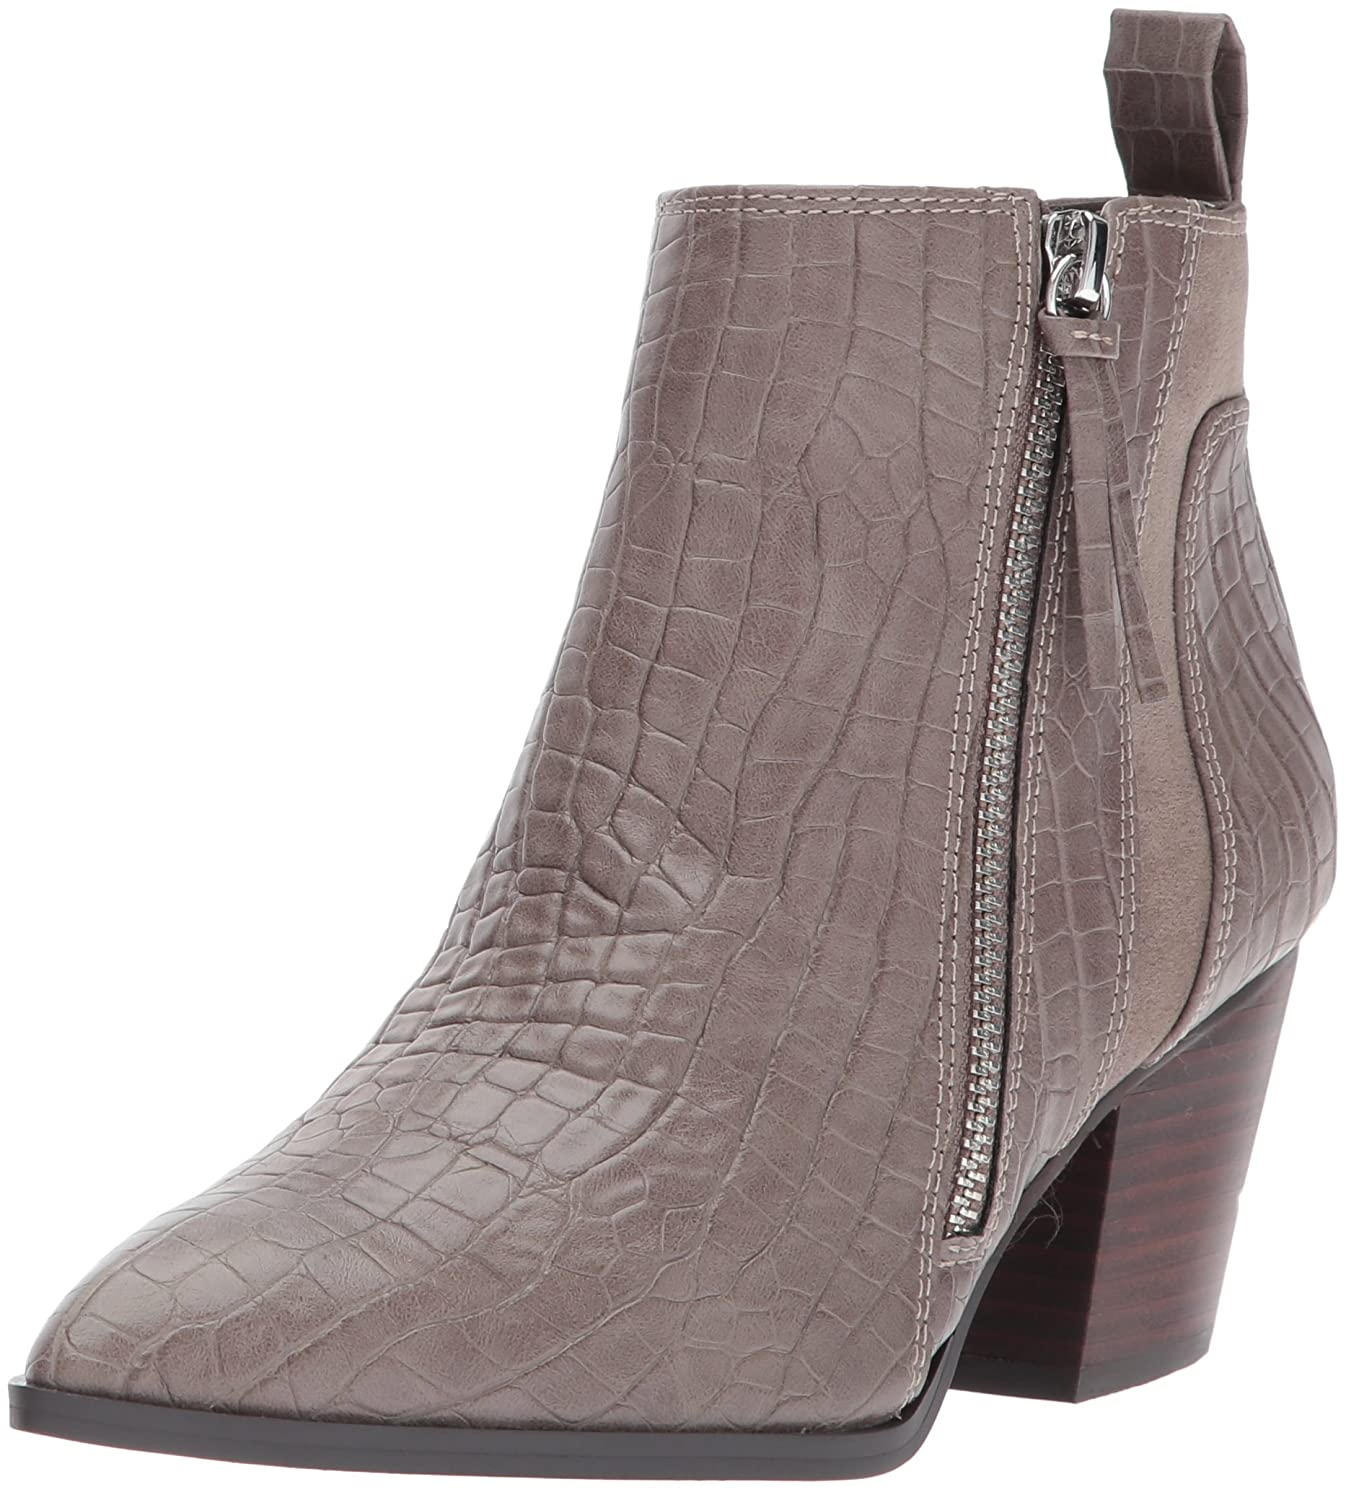 Bella Vita Women's Everest Ii Ankle Bootie B073GFL19T 11 B(M) US|Stone Crocodile